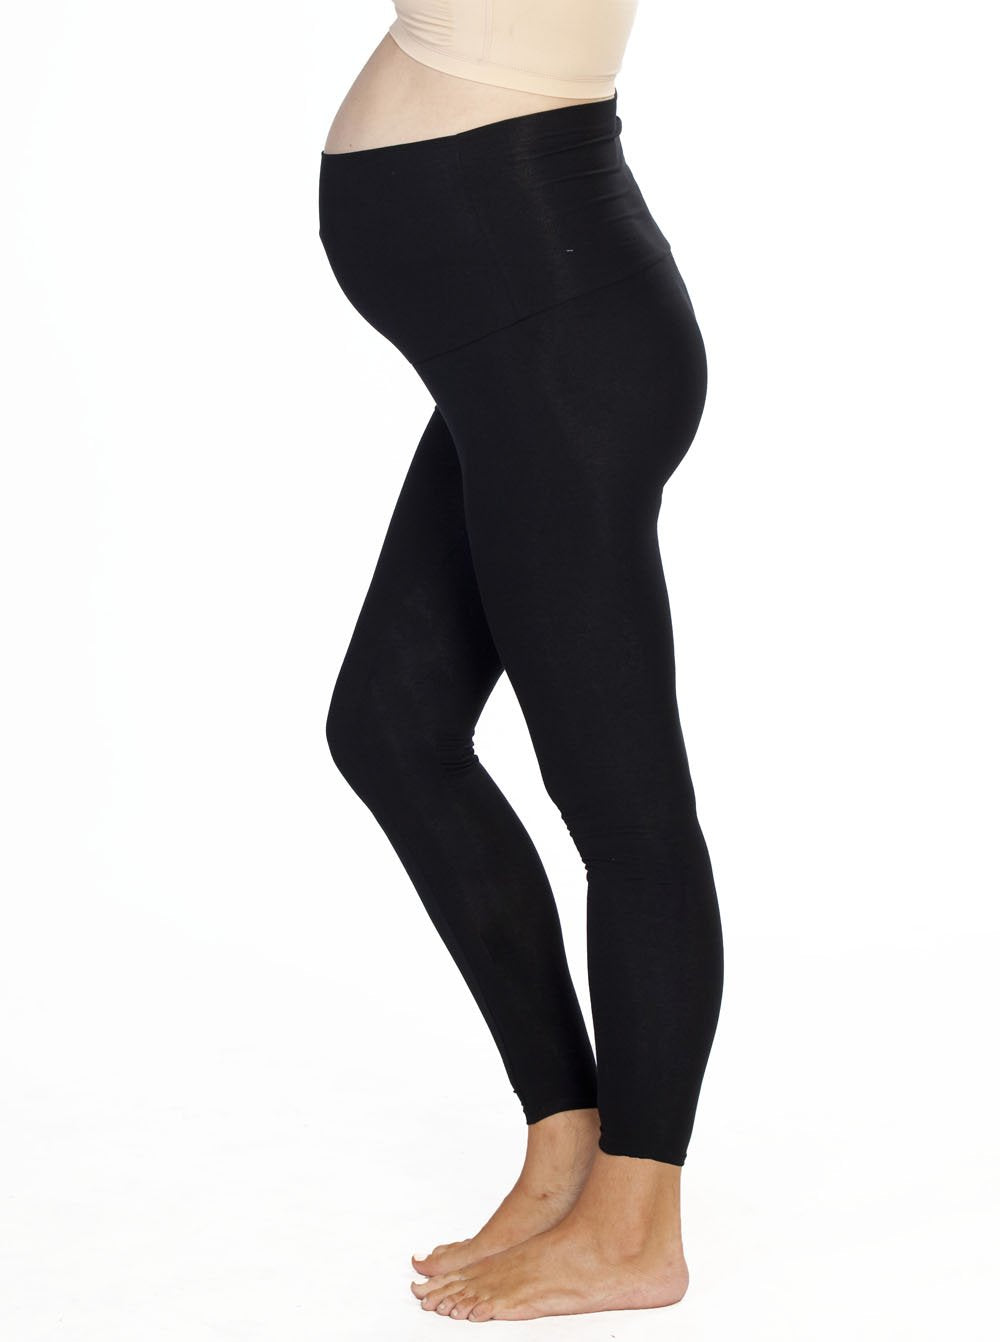 Angel Maternity Bamboo Legging - Black